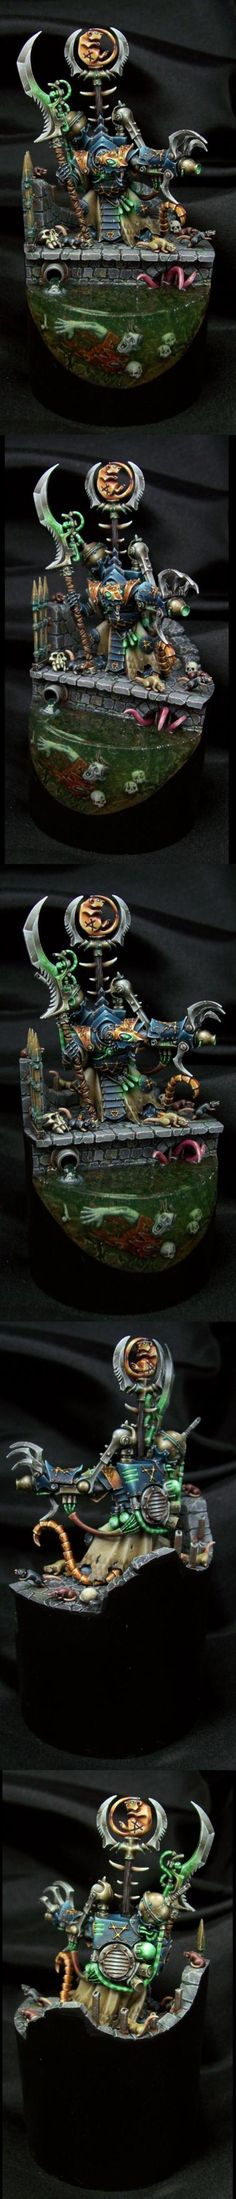 Ikit Claw Manufacturer: Games Workshop